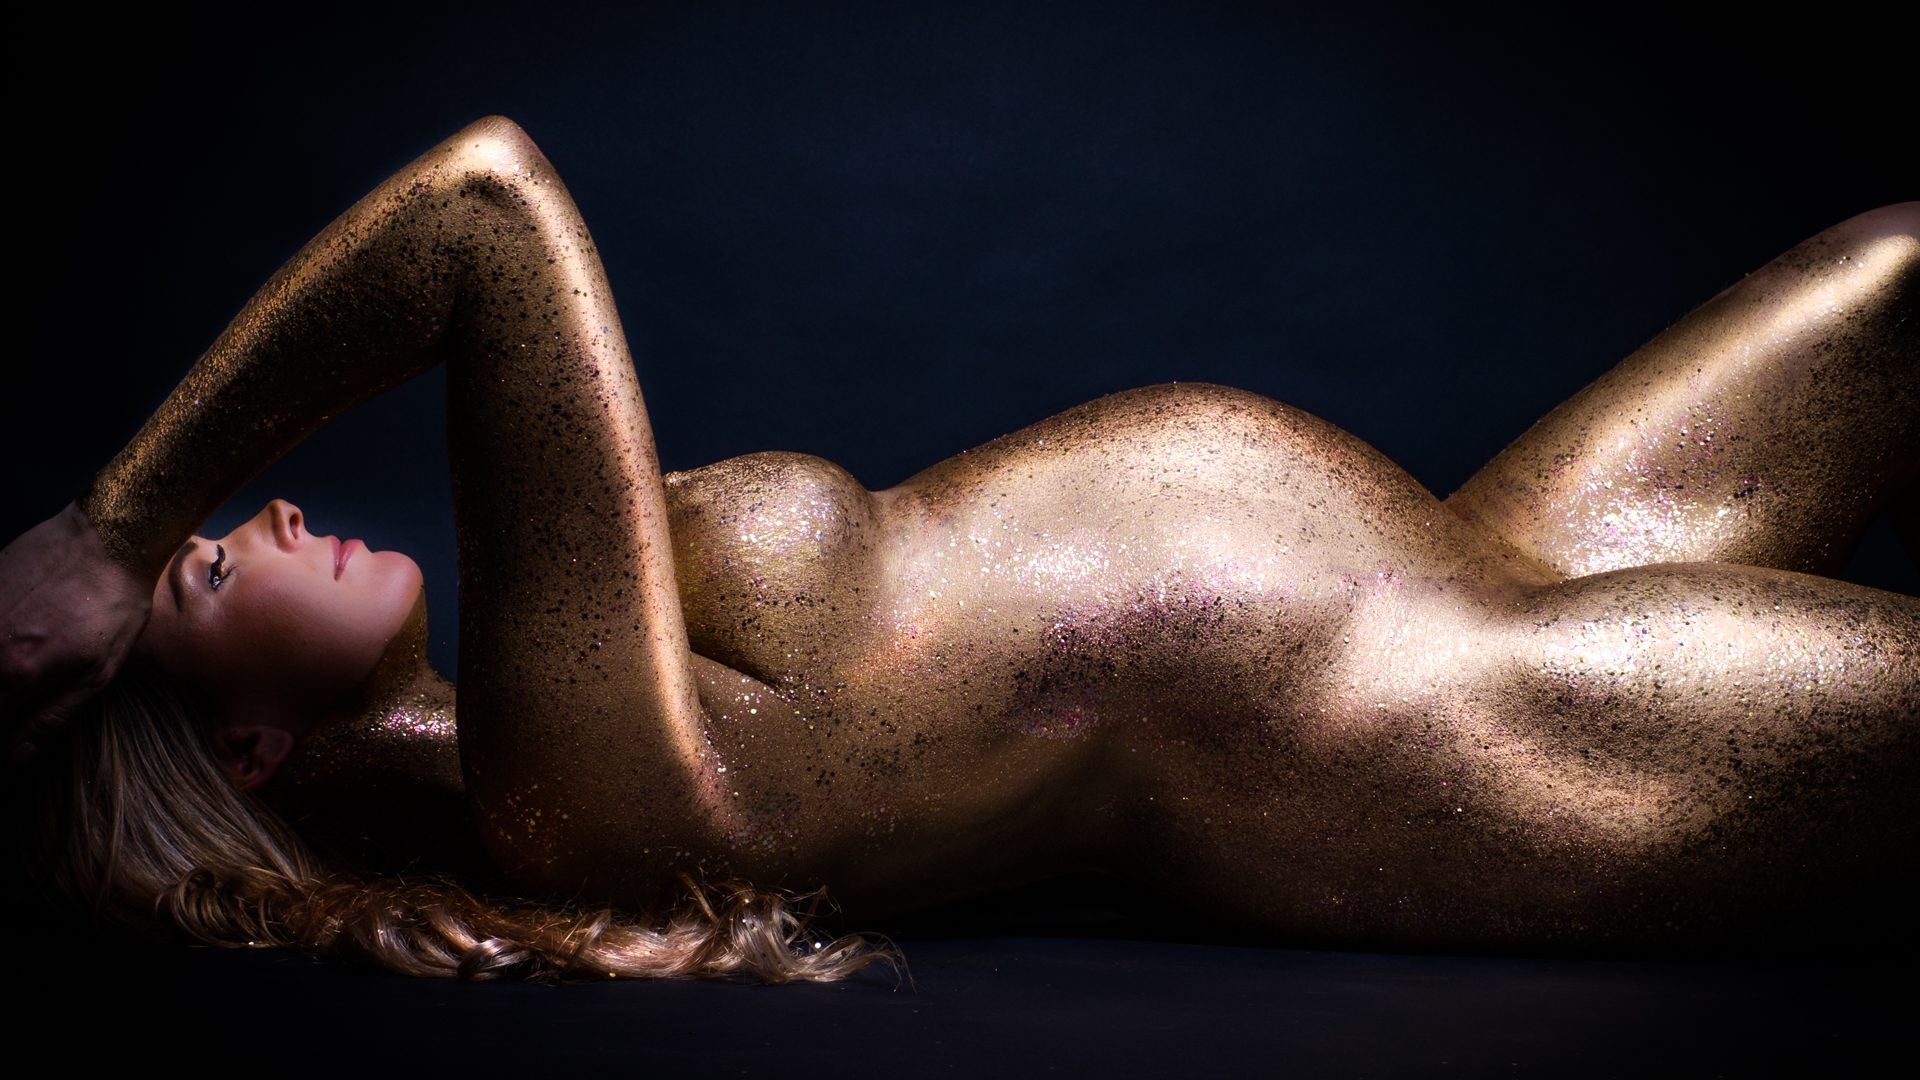 Gouden zwangerschap, Shine, goud gebodypaint, goud met glitters, zwangerschapsshoot, zwanger, zwangerschap, pregnant, fotografie, zwangerschapsfotografie, pregnancyshoot, maternityshoot, photoshoot, pregnancy, photographer, maternity, love, pregnantbelly, Paint, bodypainting, Sexy swangerschapshoot, boudoir zwangerschap